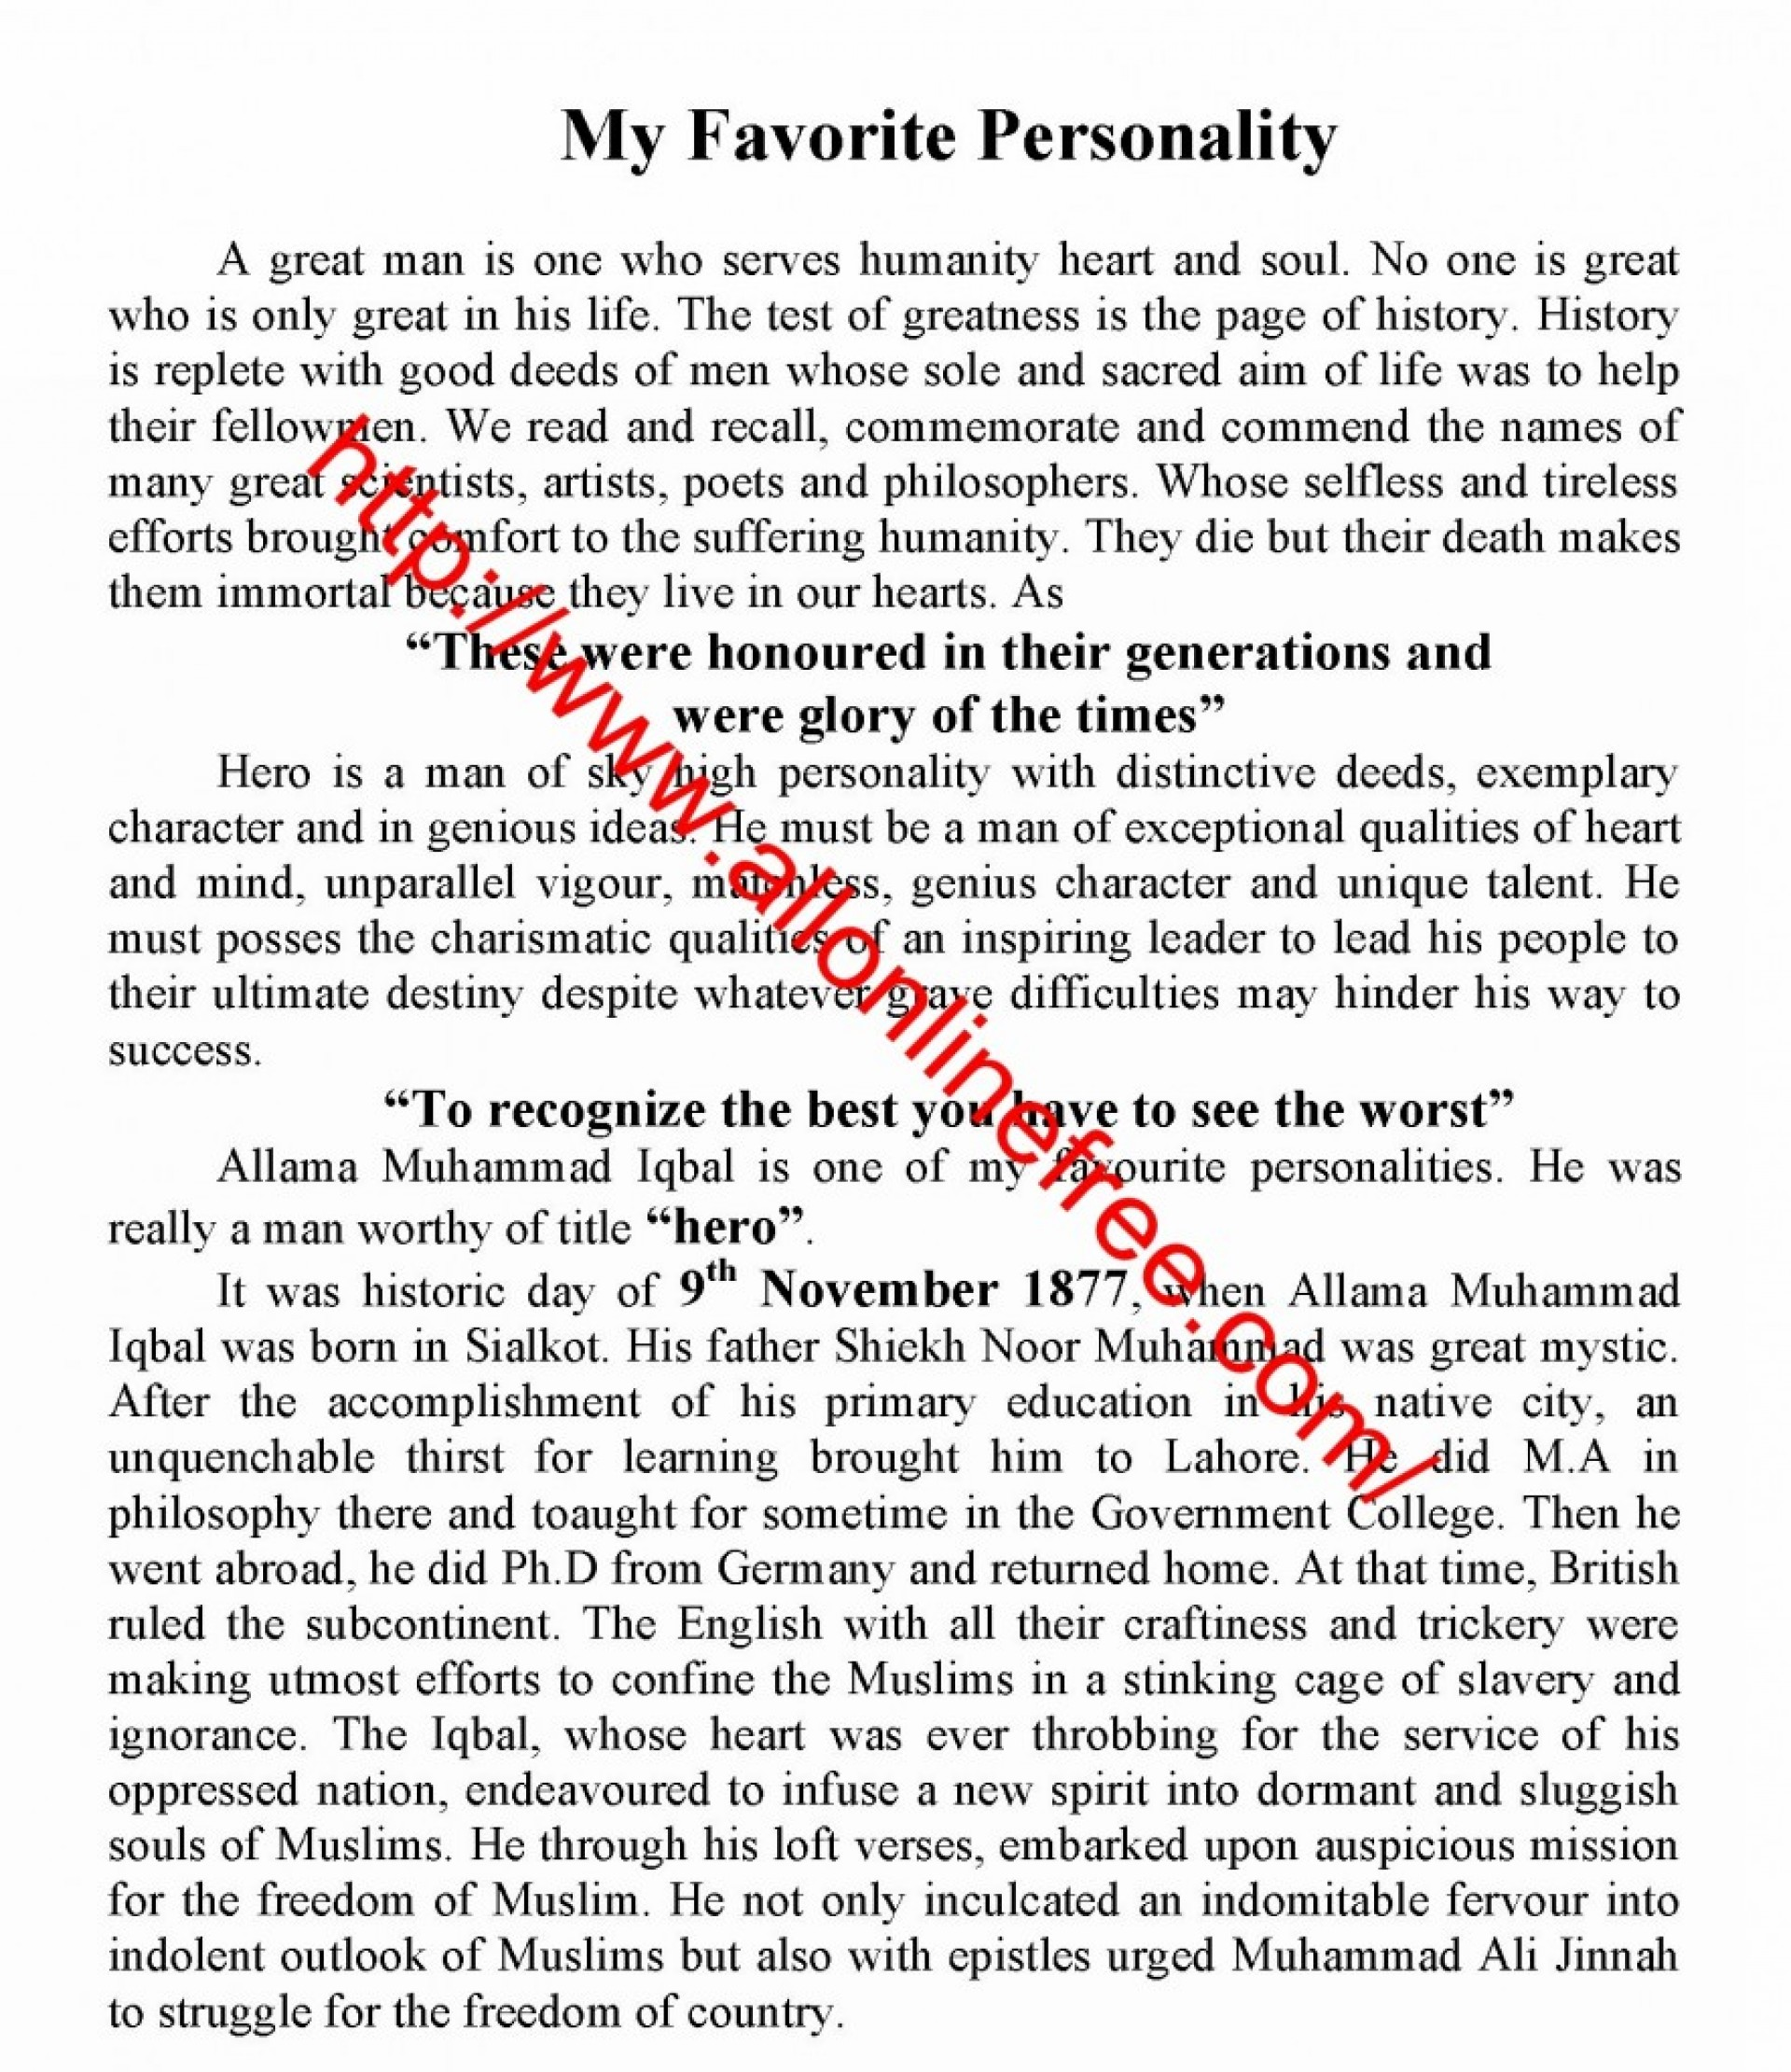 003 Write My Essay Free Online Example 4643145397 Remarkable Research Paper For Me 1920